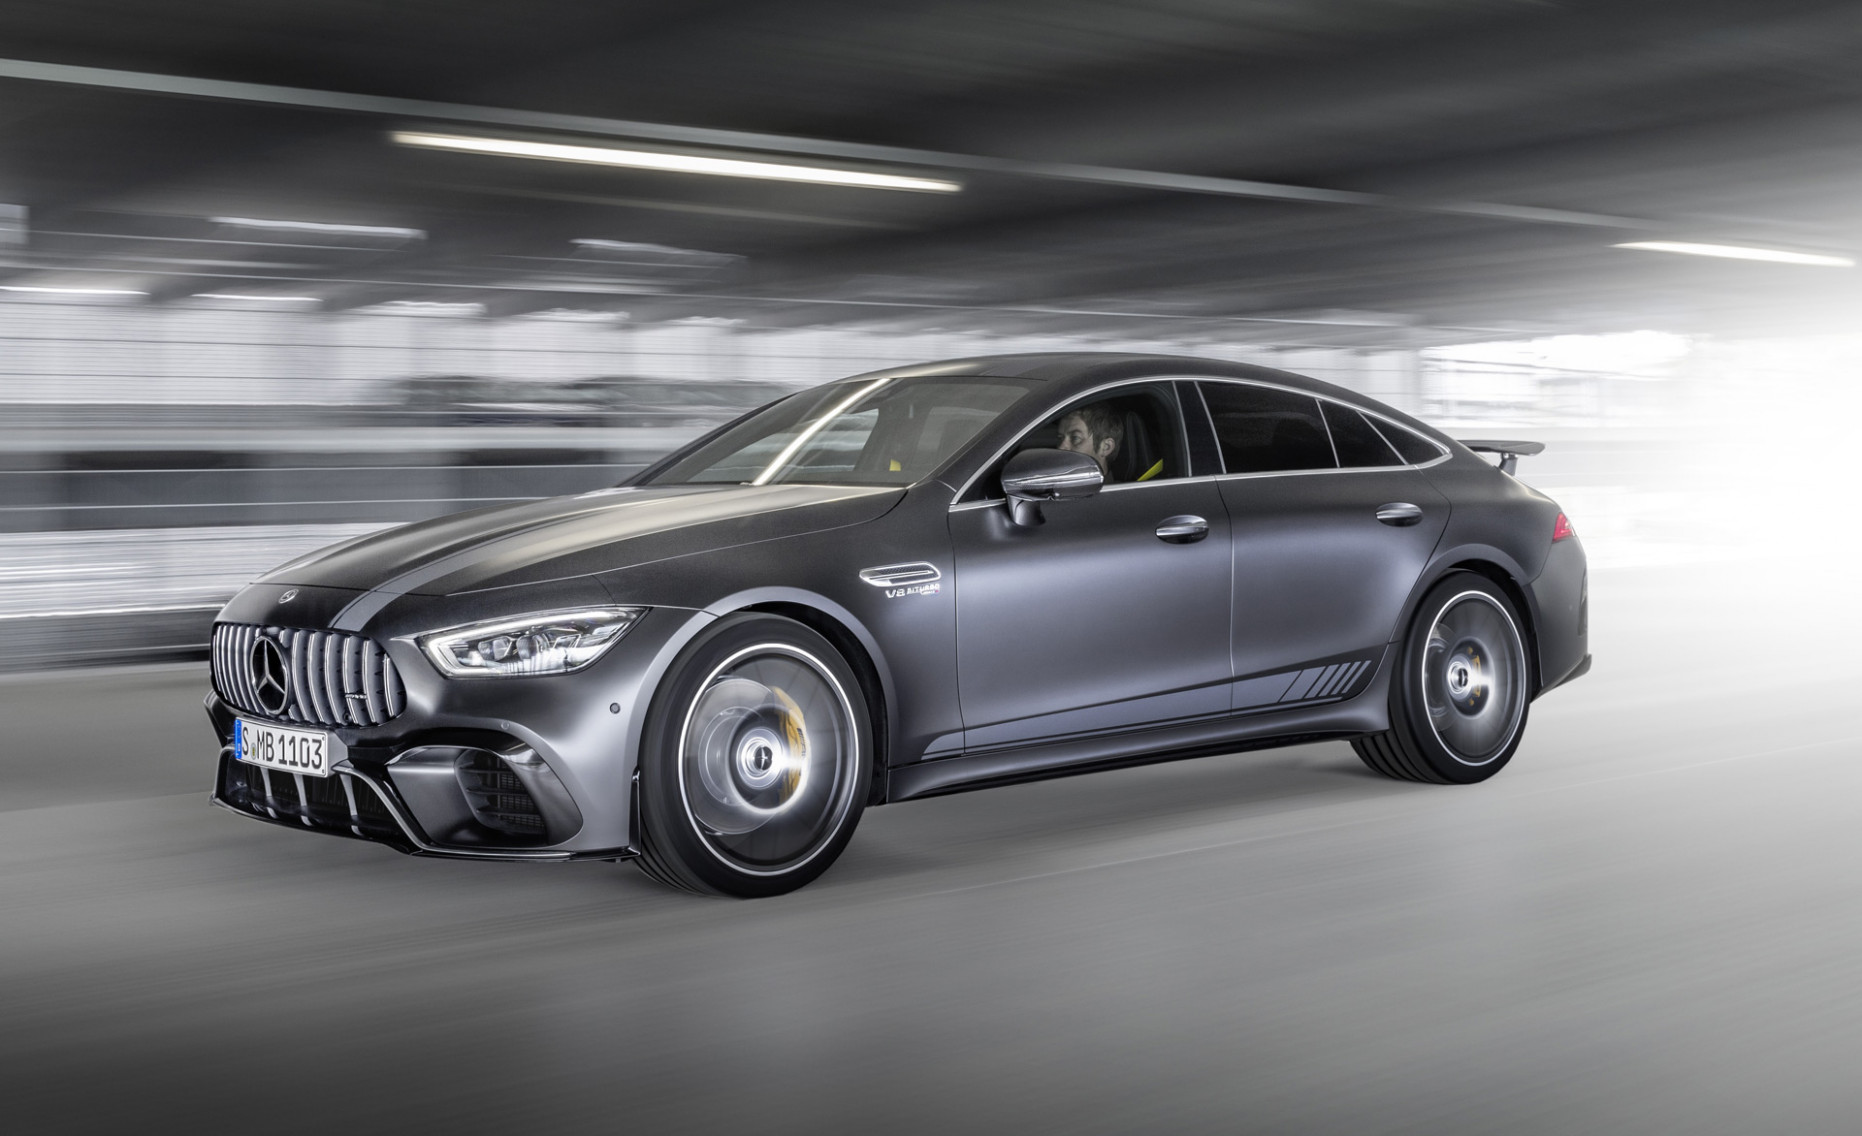 Mercedes-AMG teases electrified GT 7-Door Coupe due in 7